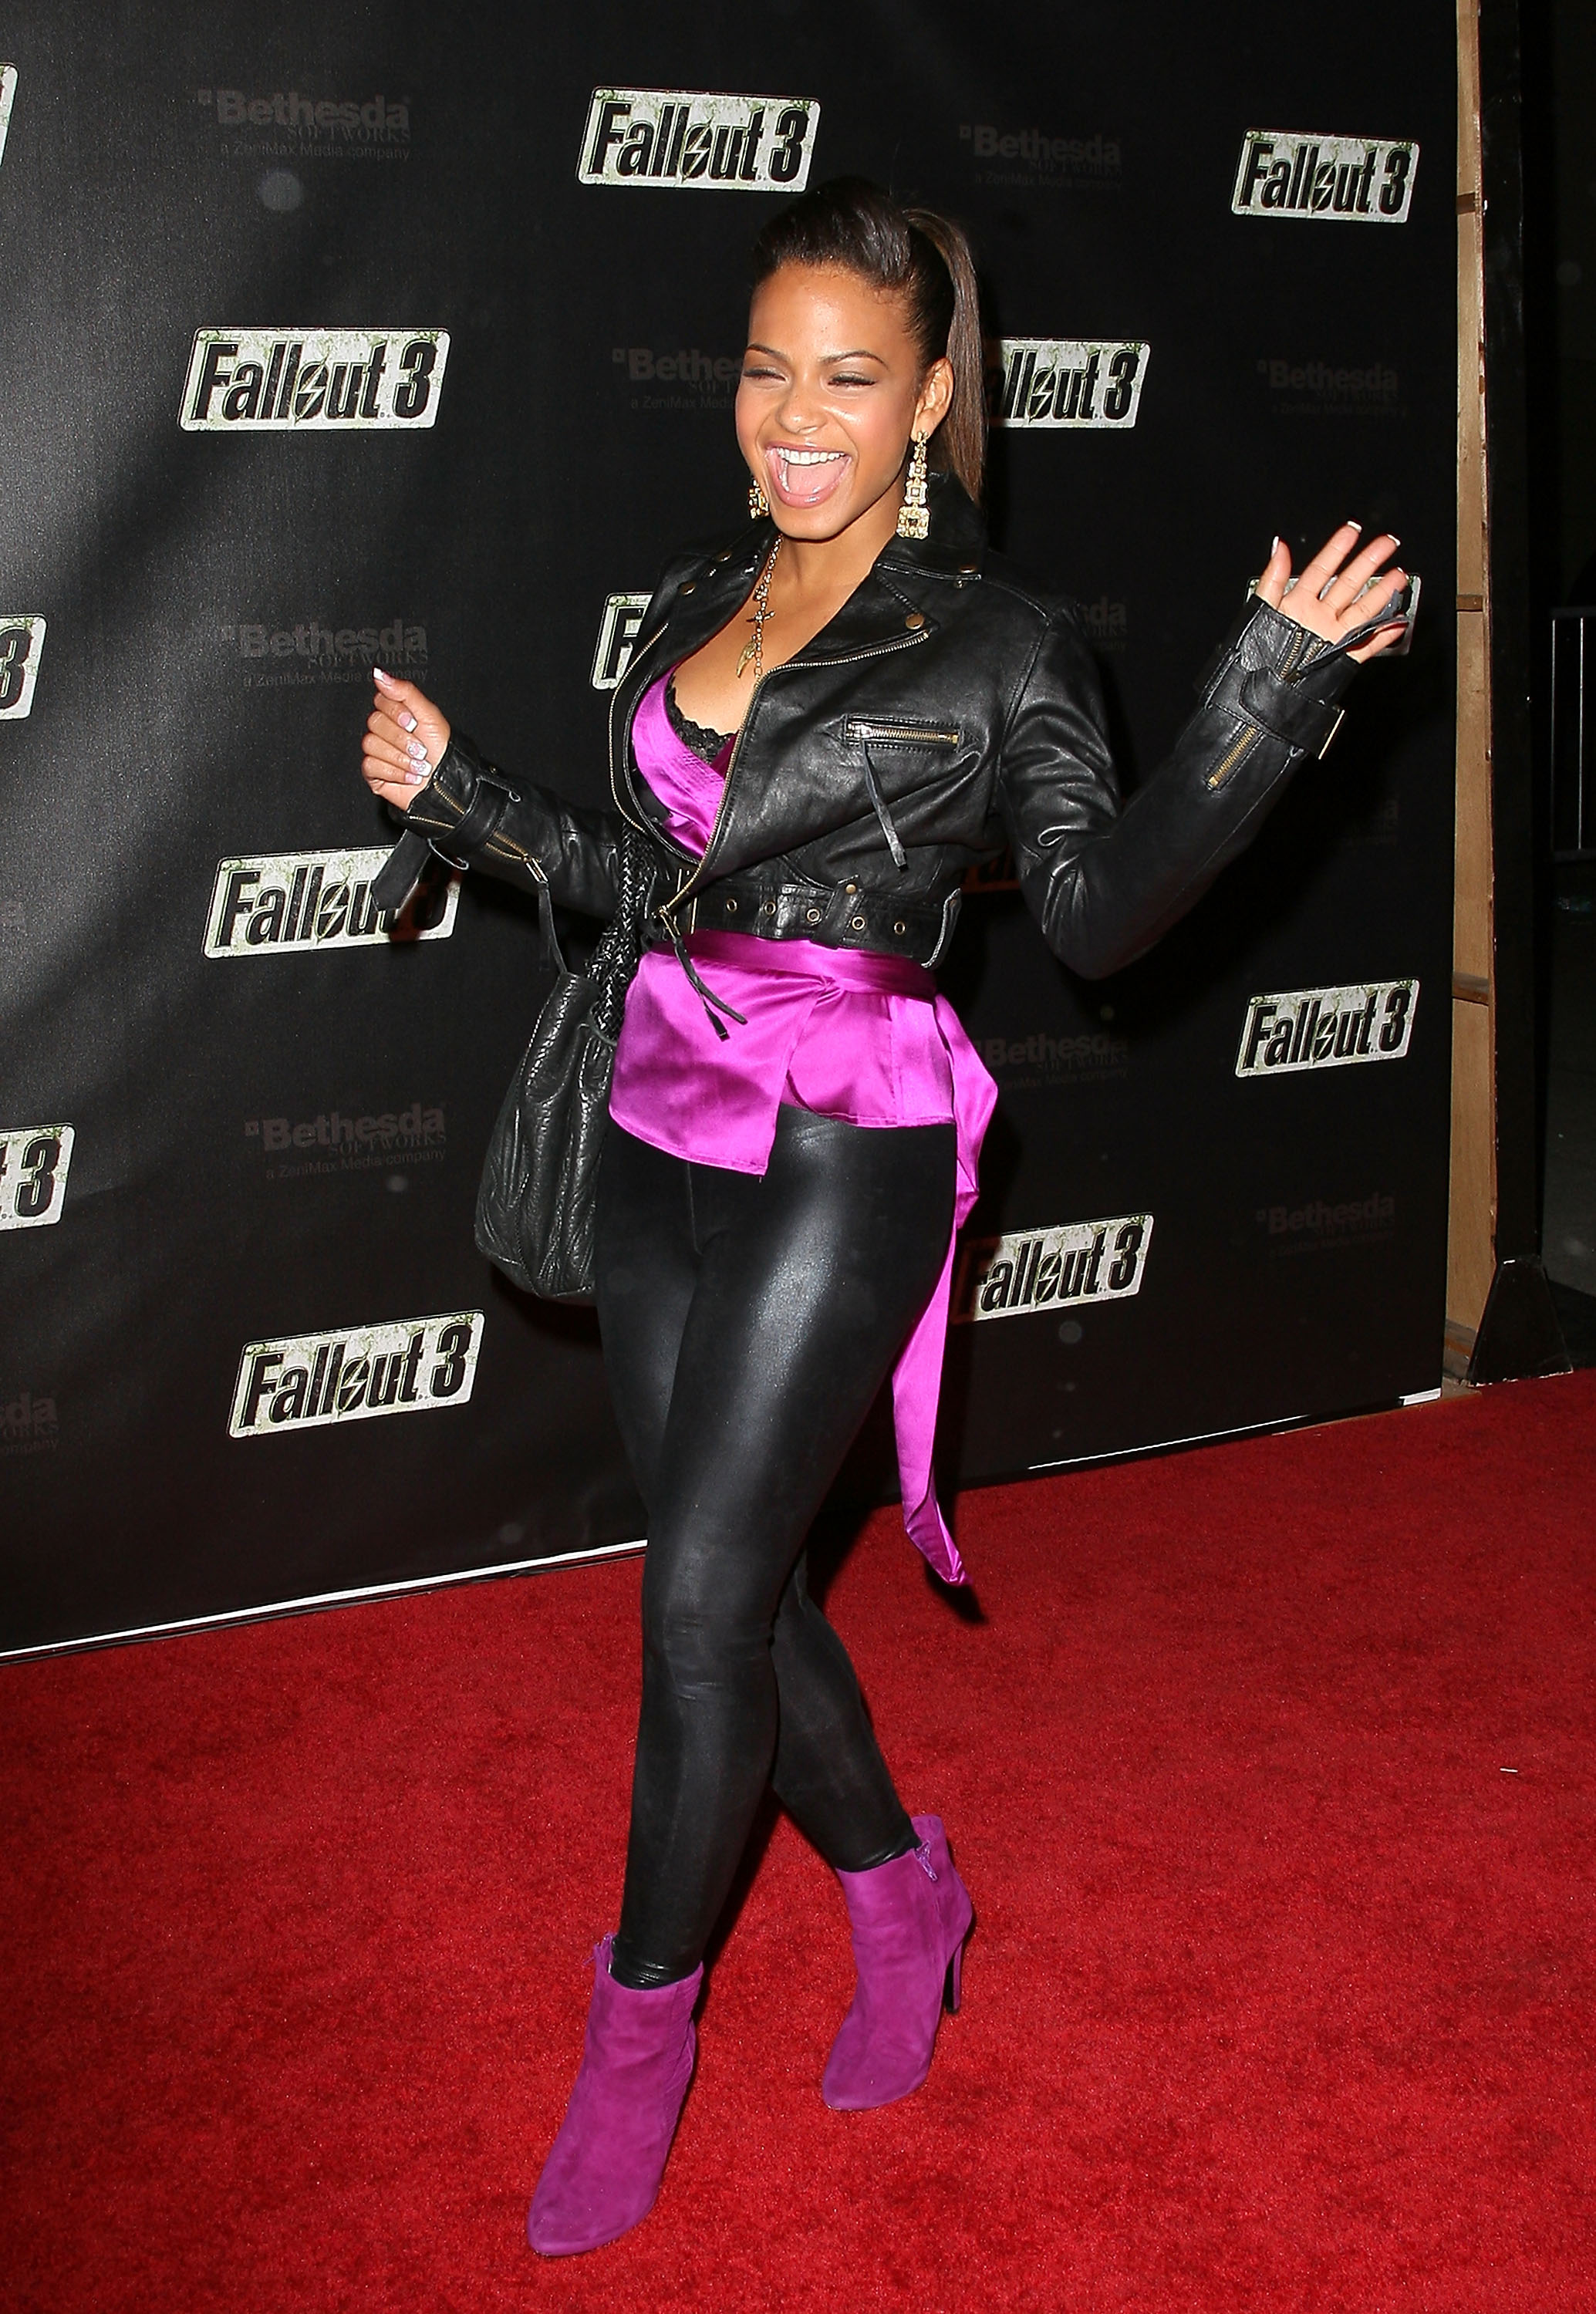 54941_Celebutopia-Christina_Milian-Launch_Party_for_Fallout_3_videogame-05_122_396lo.jpg